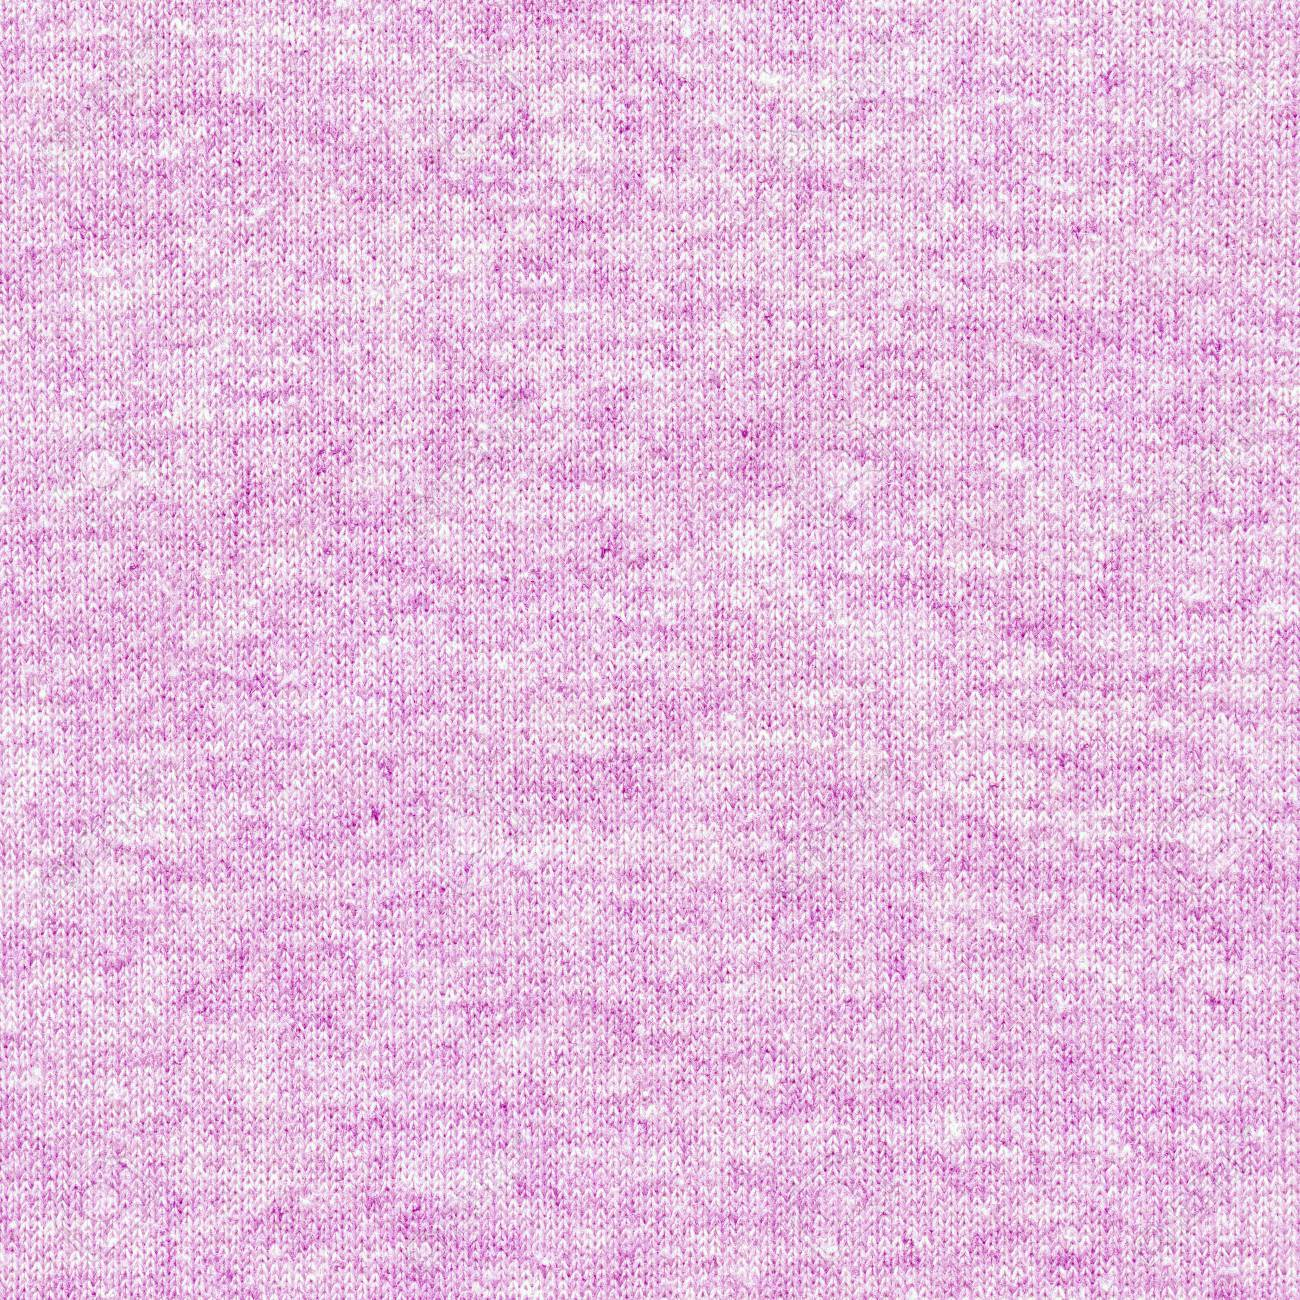 Fabric wool texture  Light pink color background